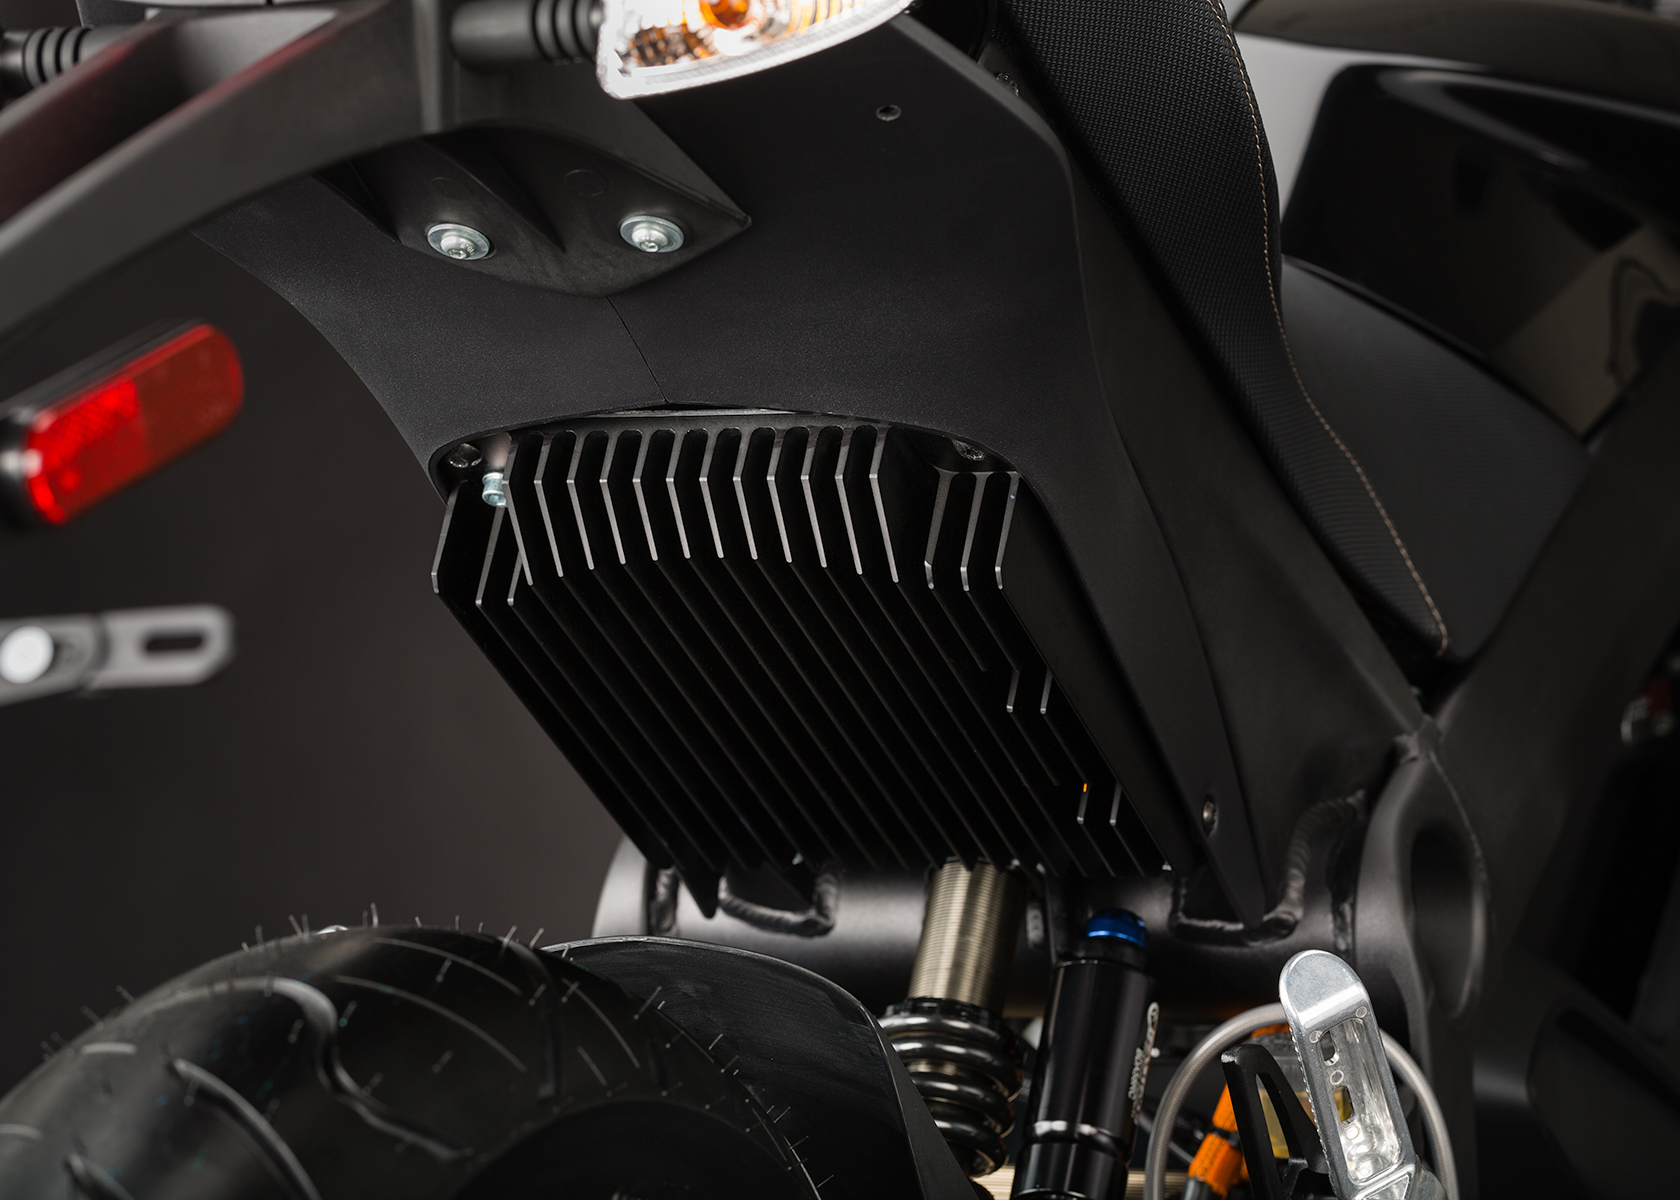 2014 Zero S Electric Motorcycle: Belt Controller